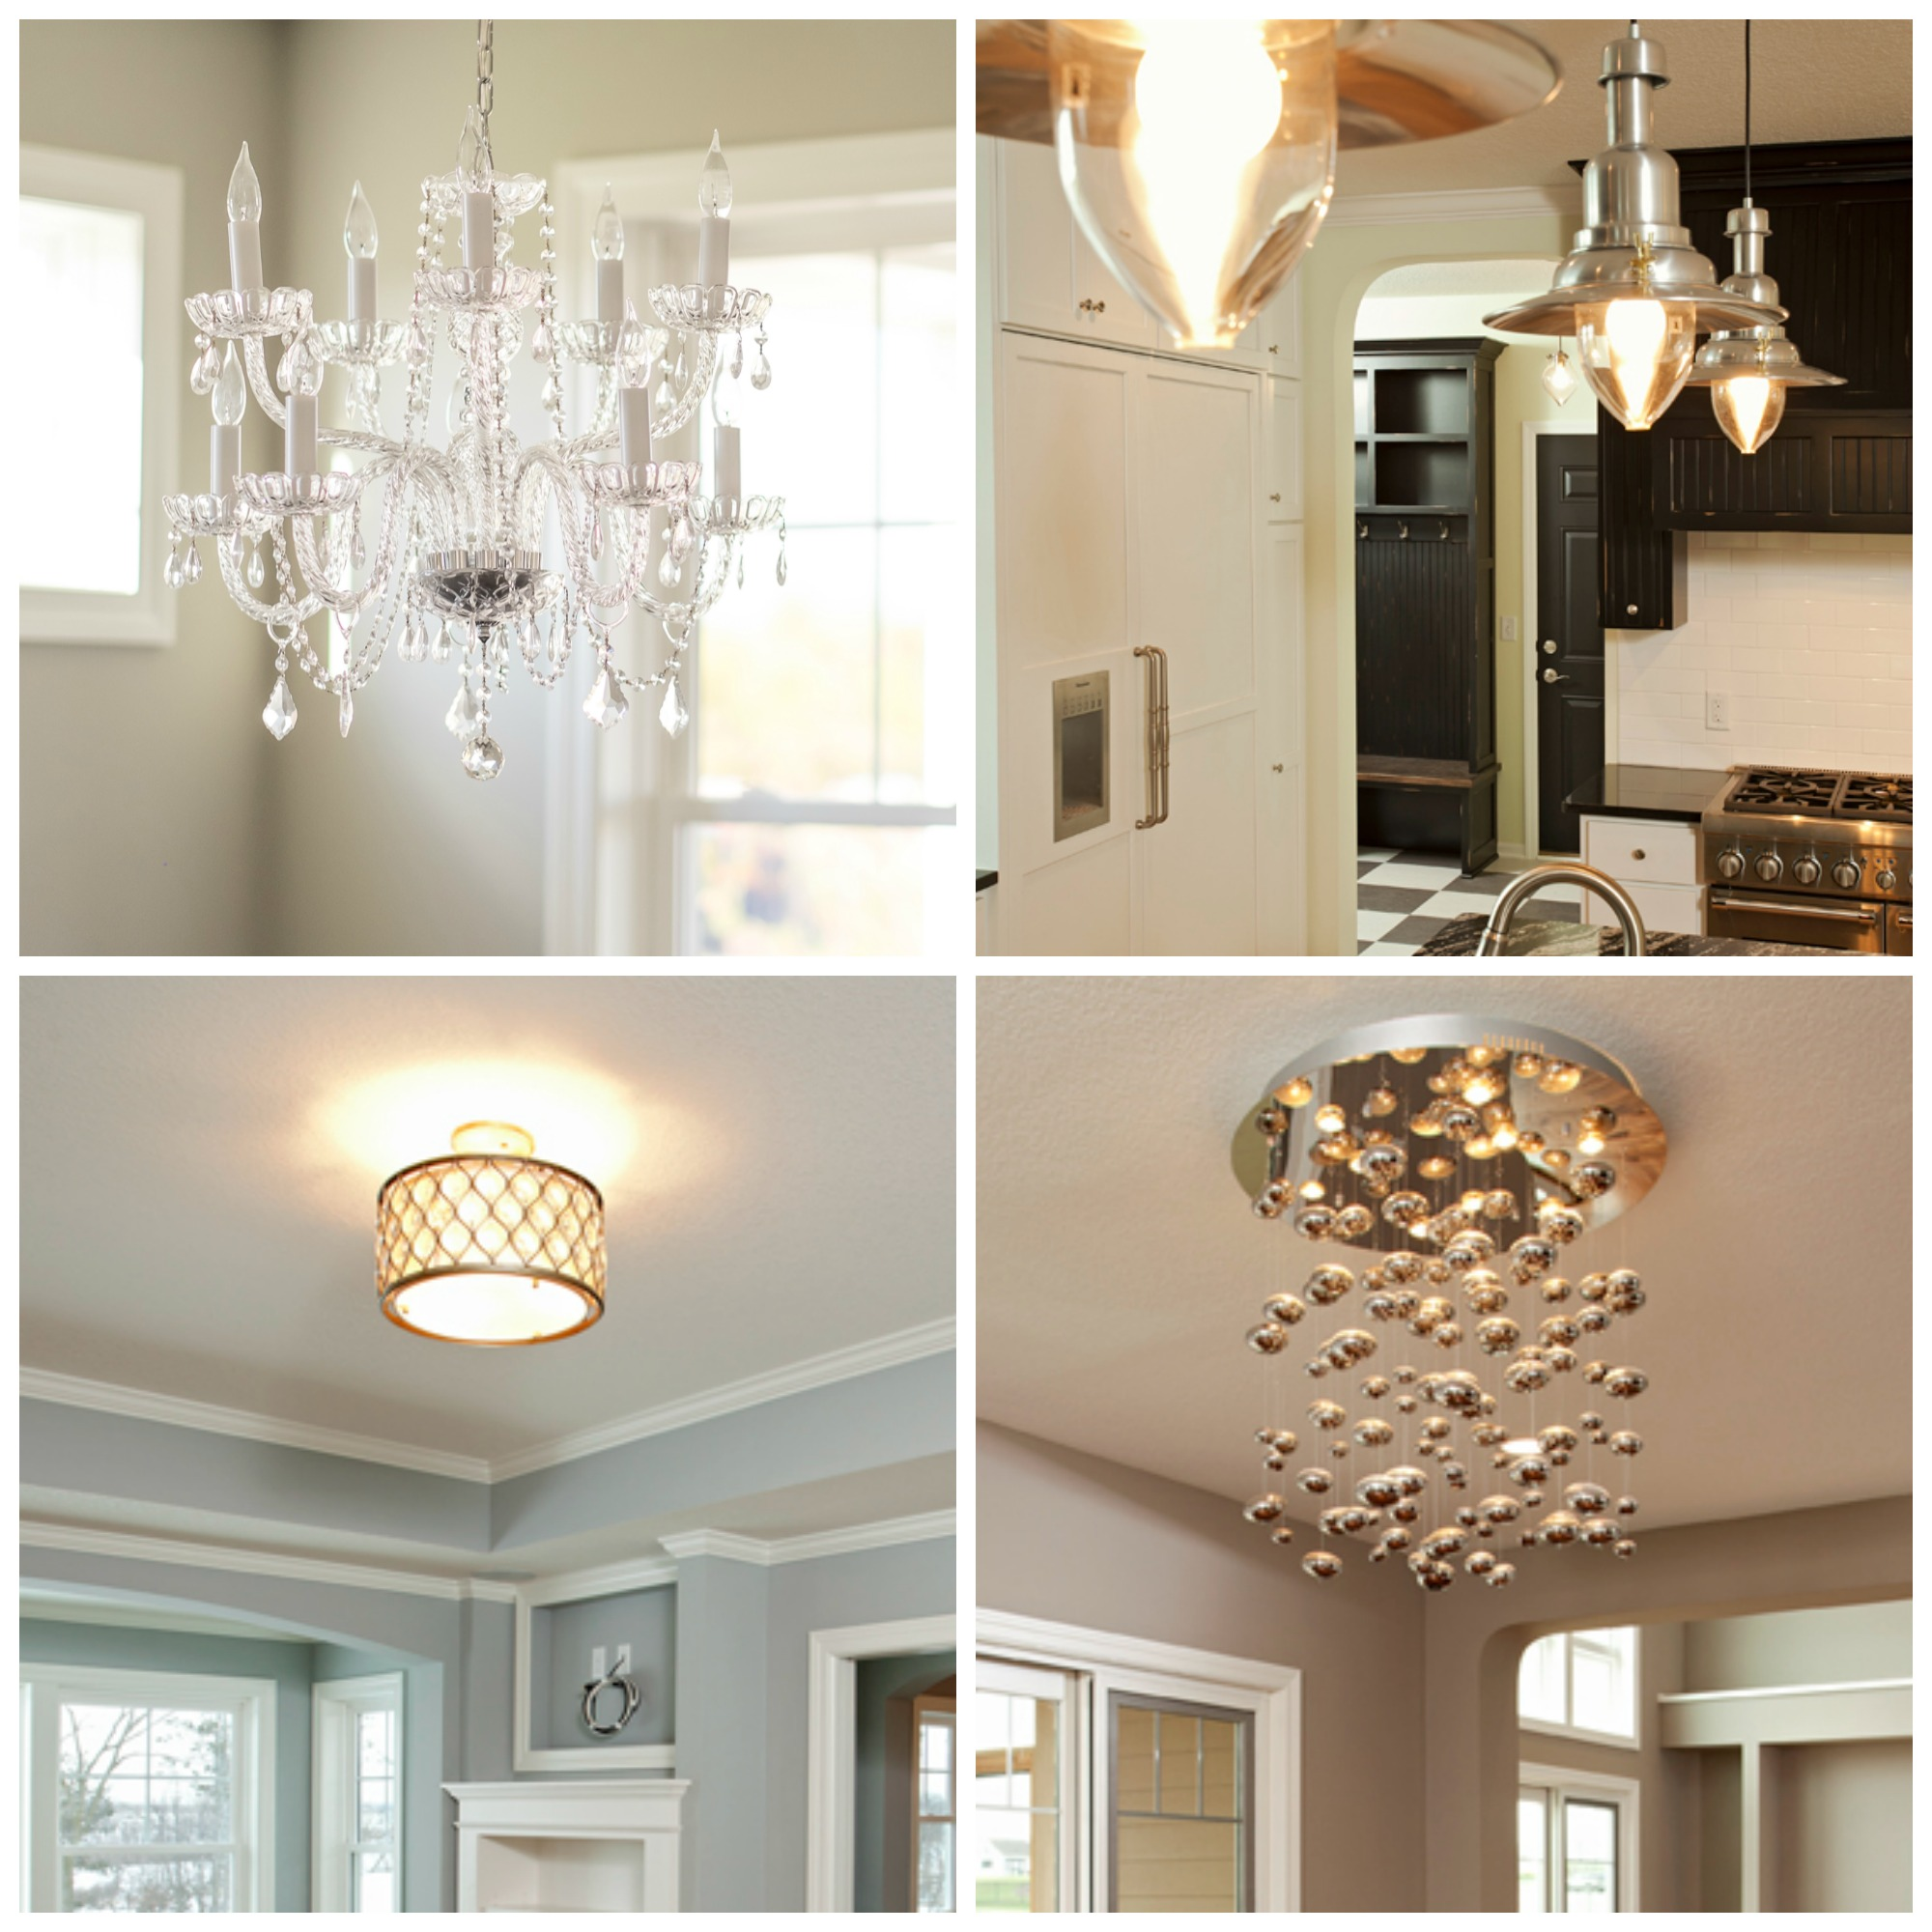 Light Fixtures | Homes by Tradition